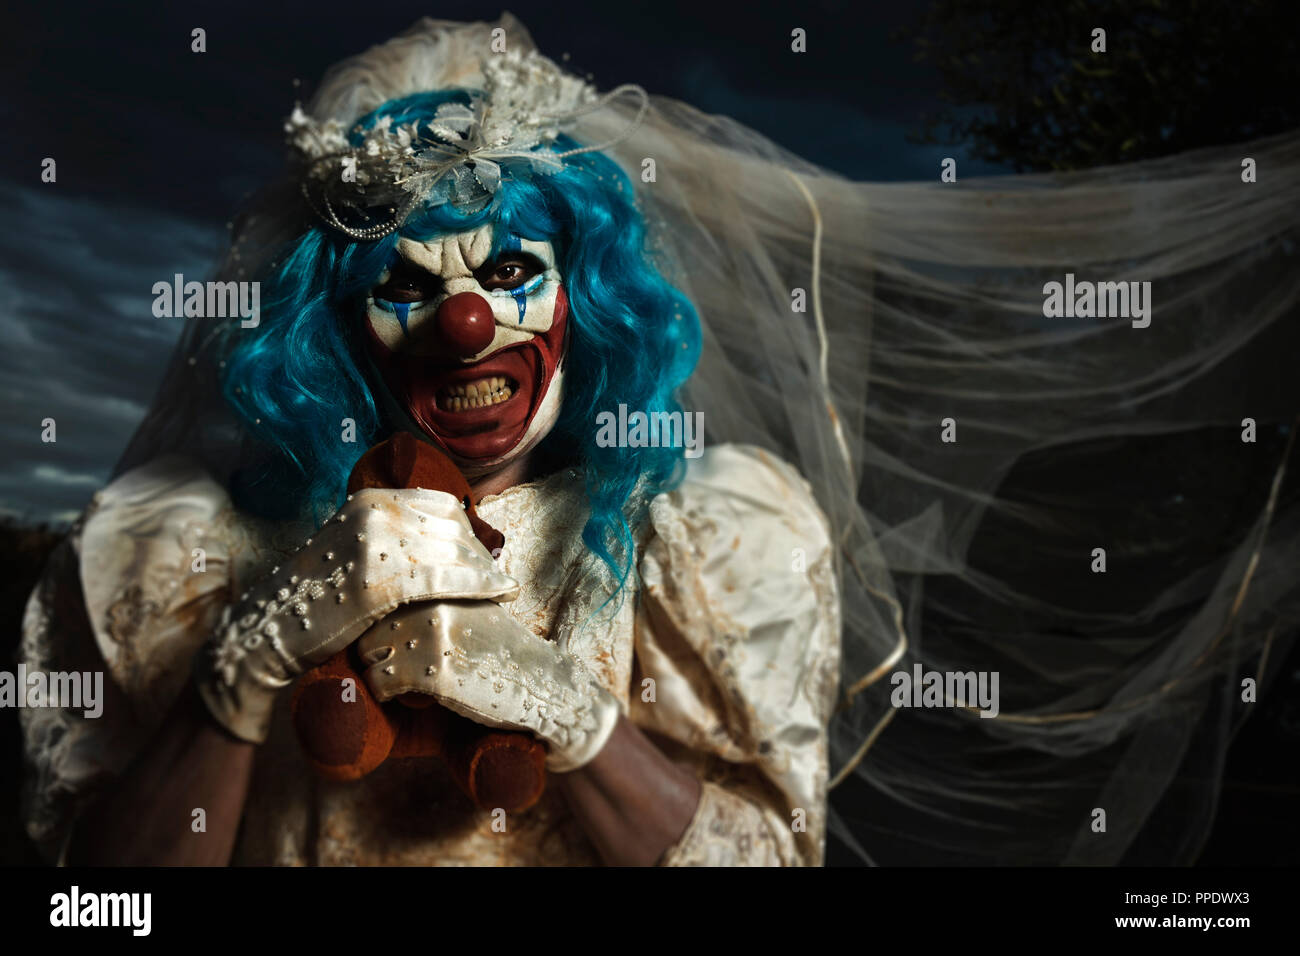 Closeup Of A Scary Evil Clown Wearing A Dirty And Ragged Bride Dress